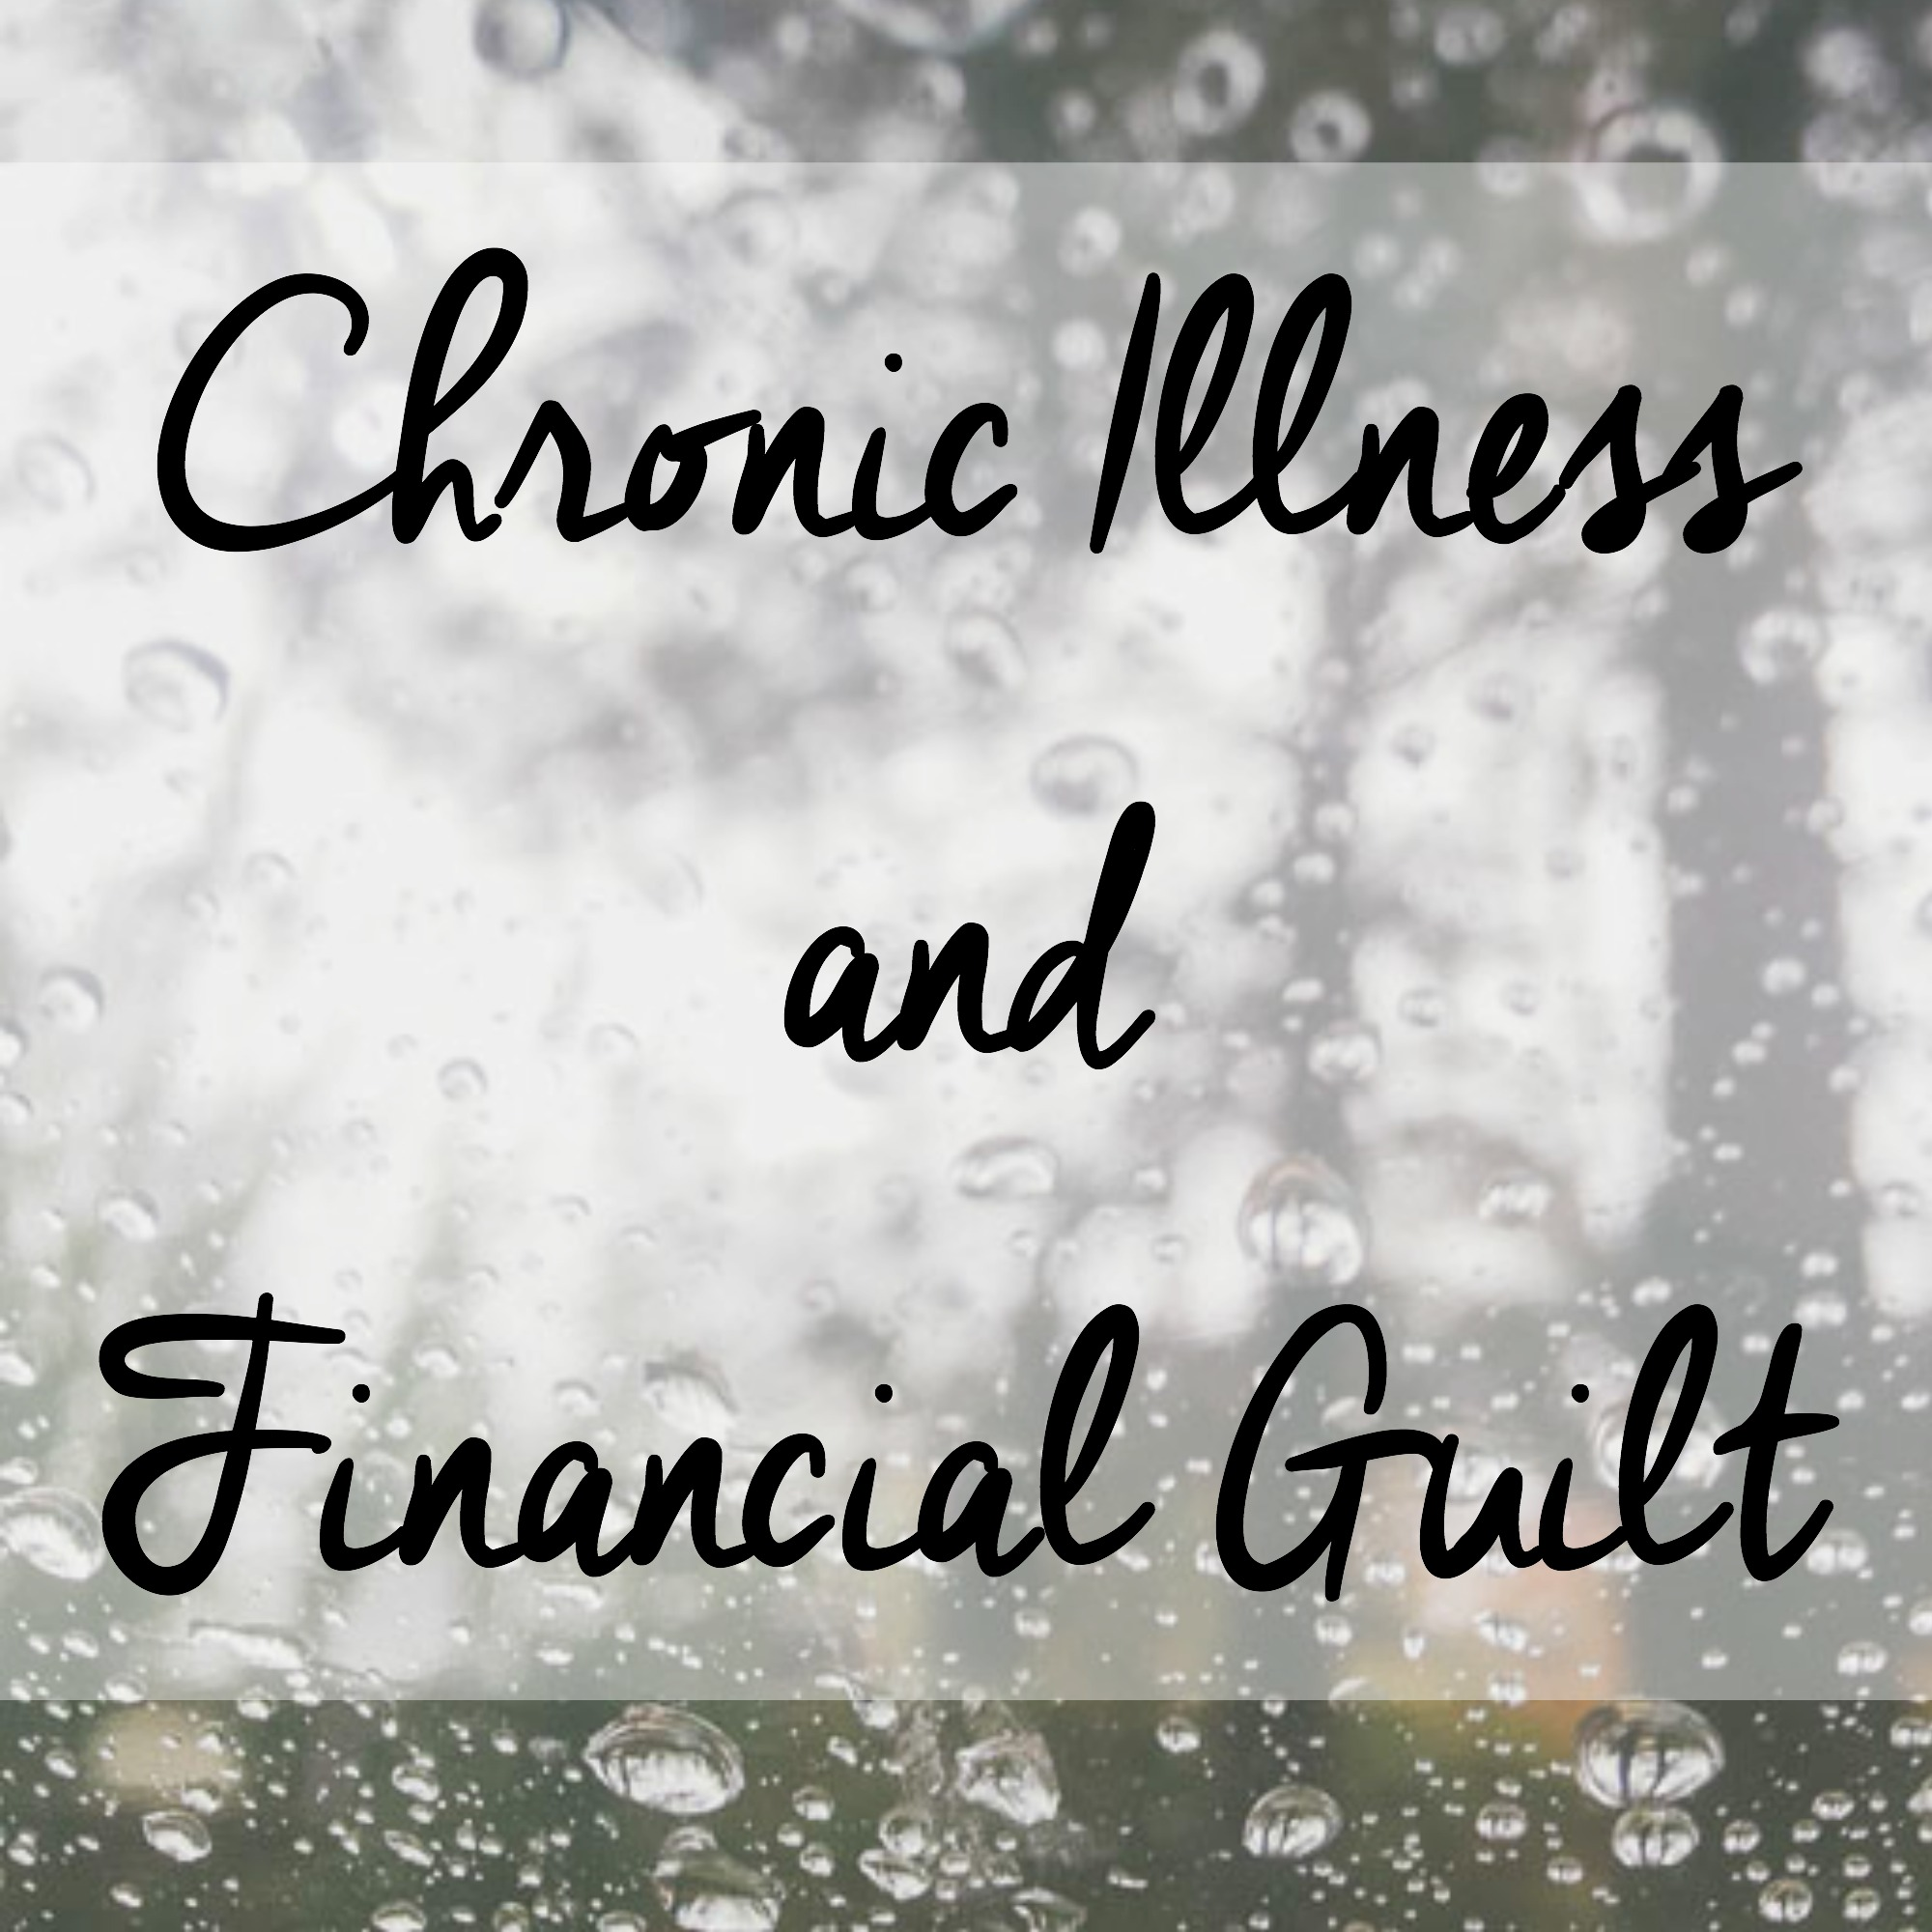 Chronic Illness and Financial Guilt